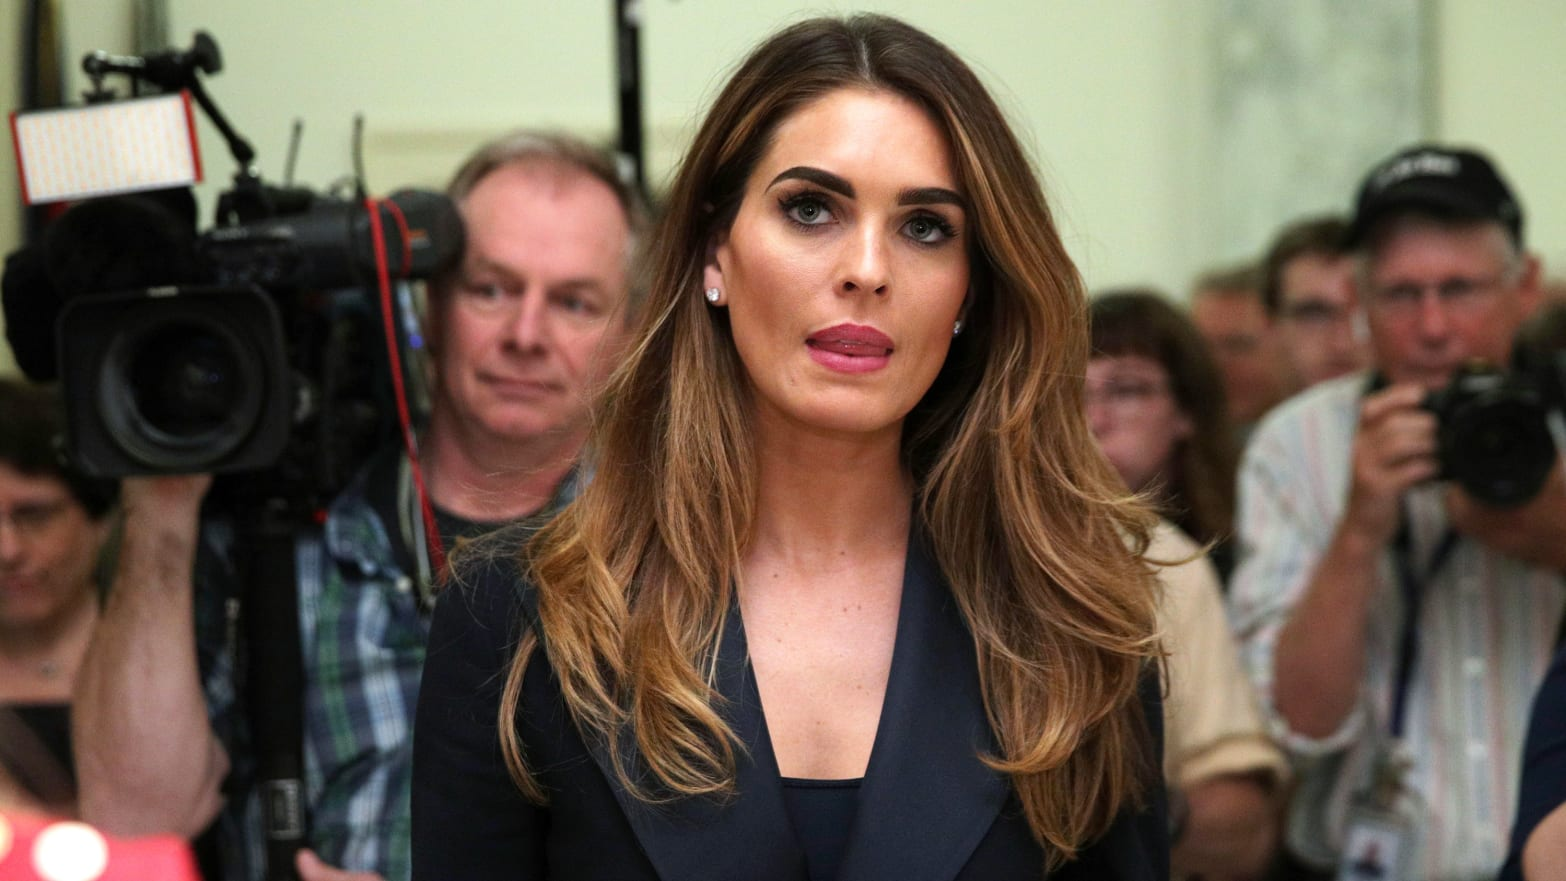 Hope Hicks, Who Saw Everything and Said Nothing, Just Exposed Trump